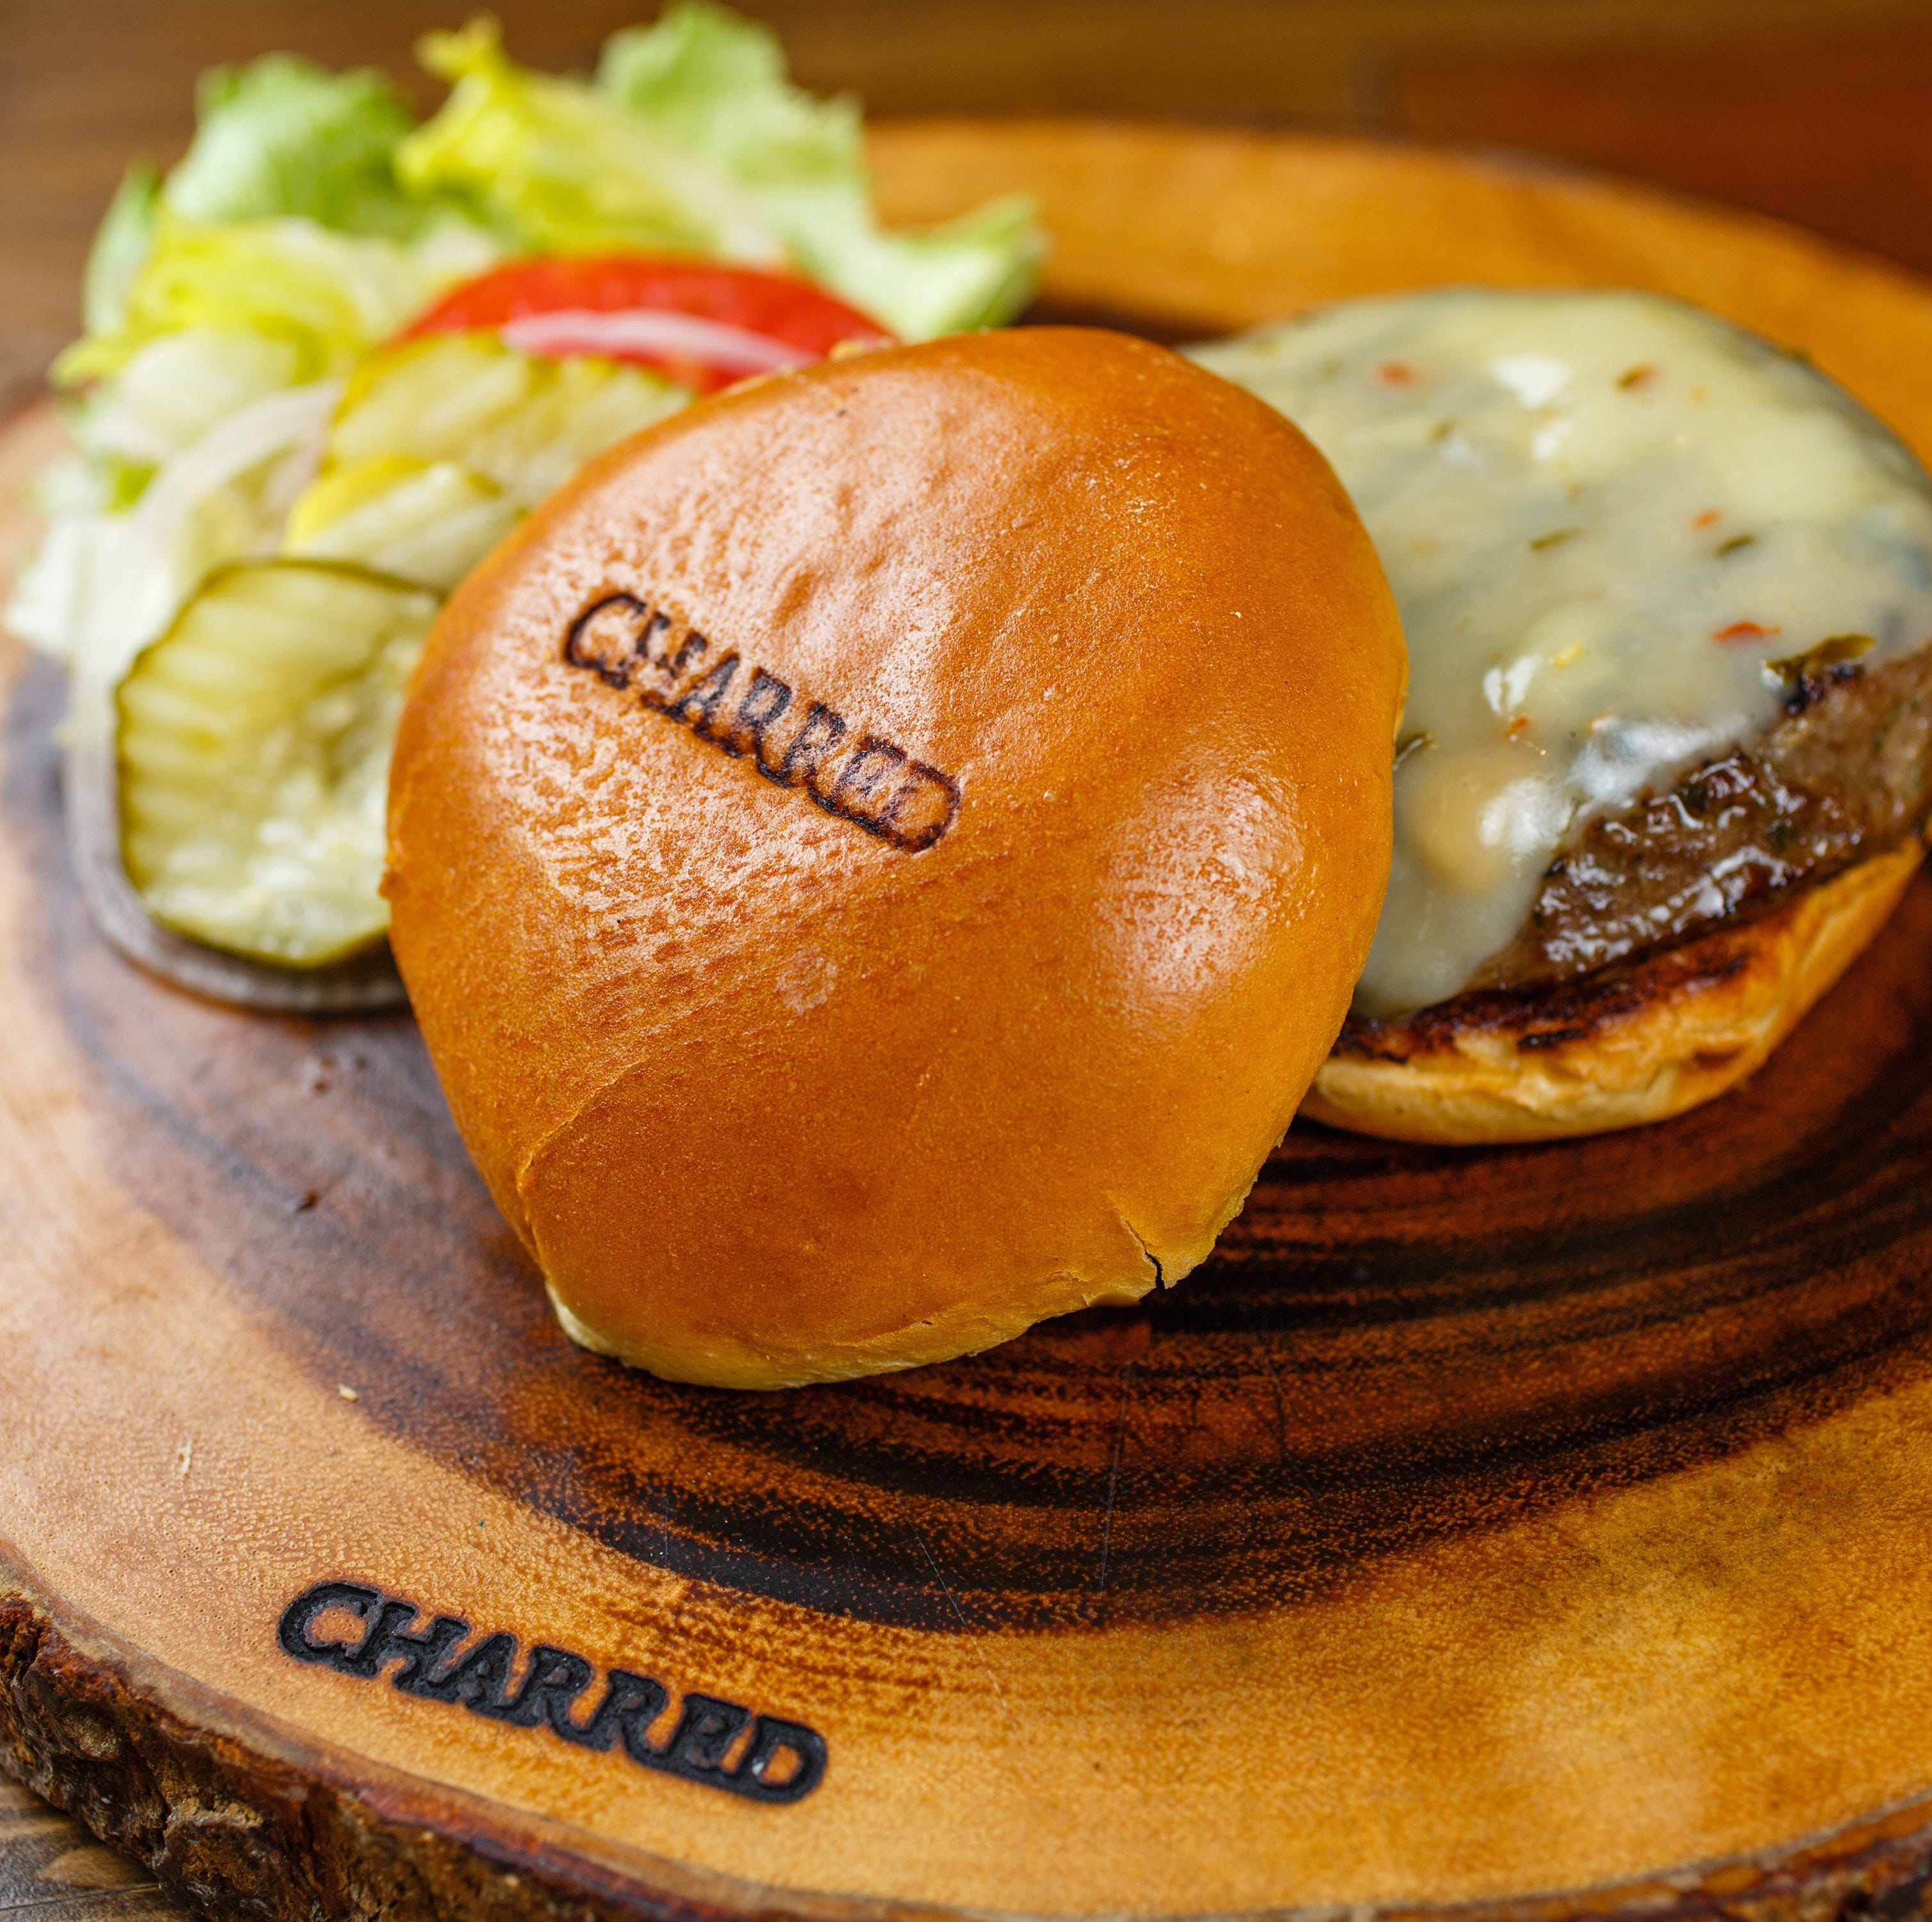 In the Know: Jimmy P's Charred expands to Bonita Springs